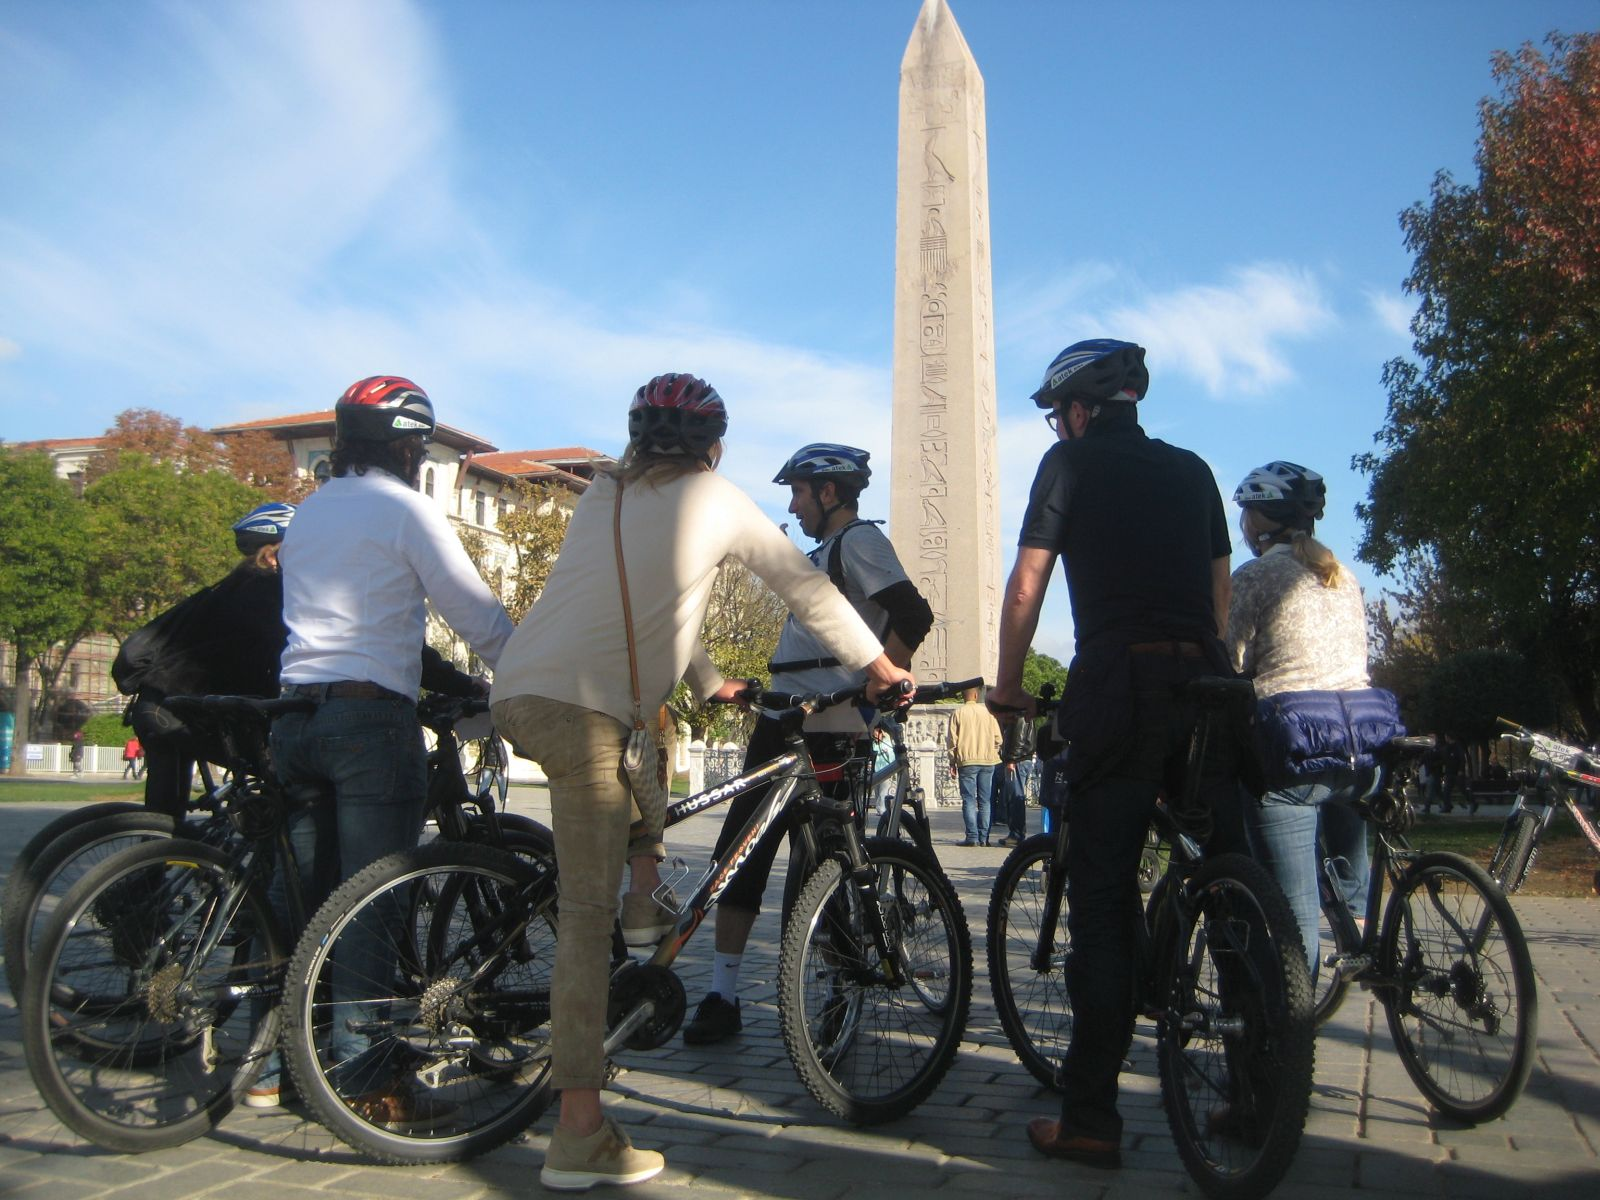 Egyptian Obelisk Old City Bike Tour